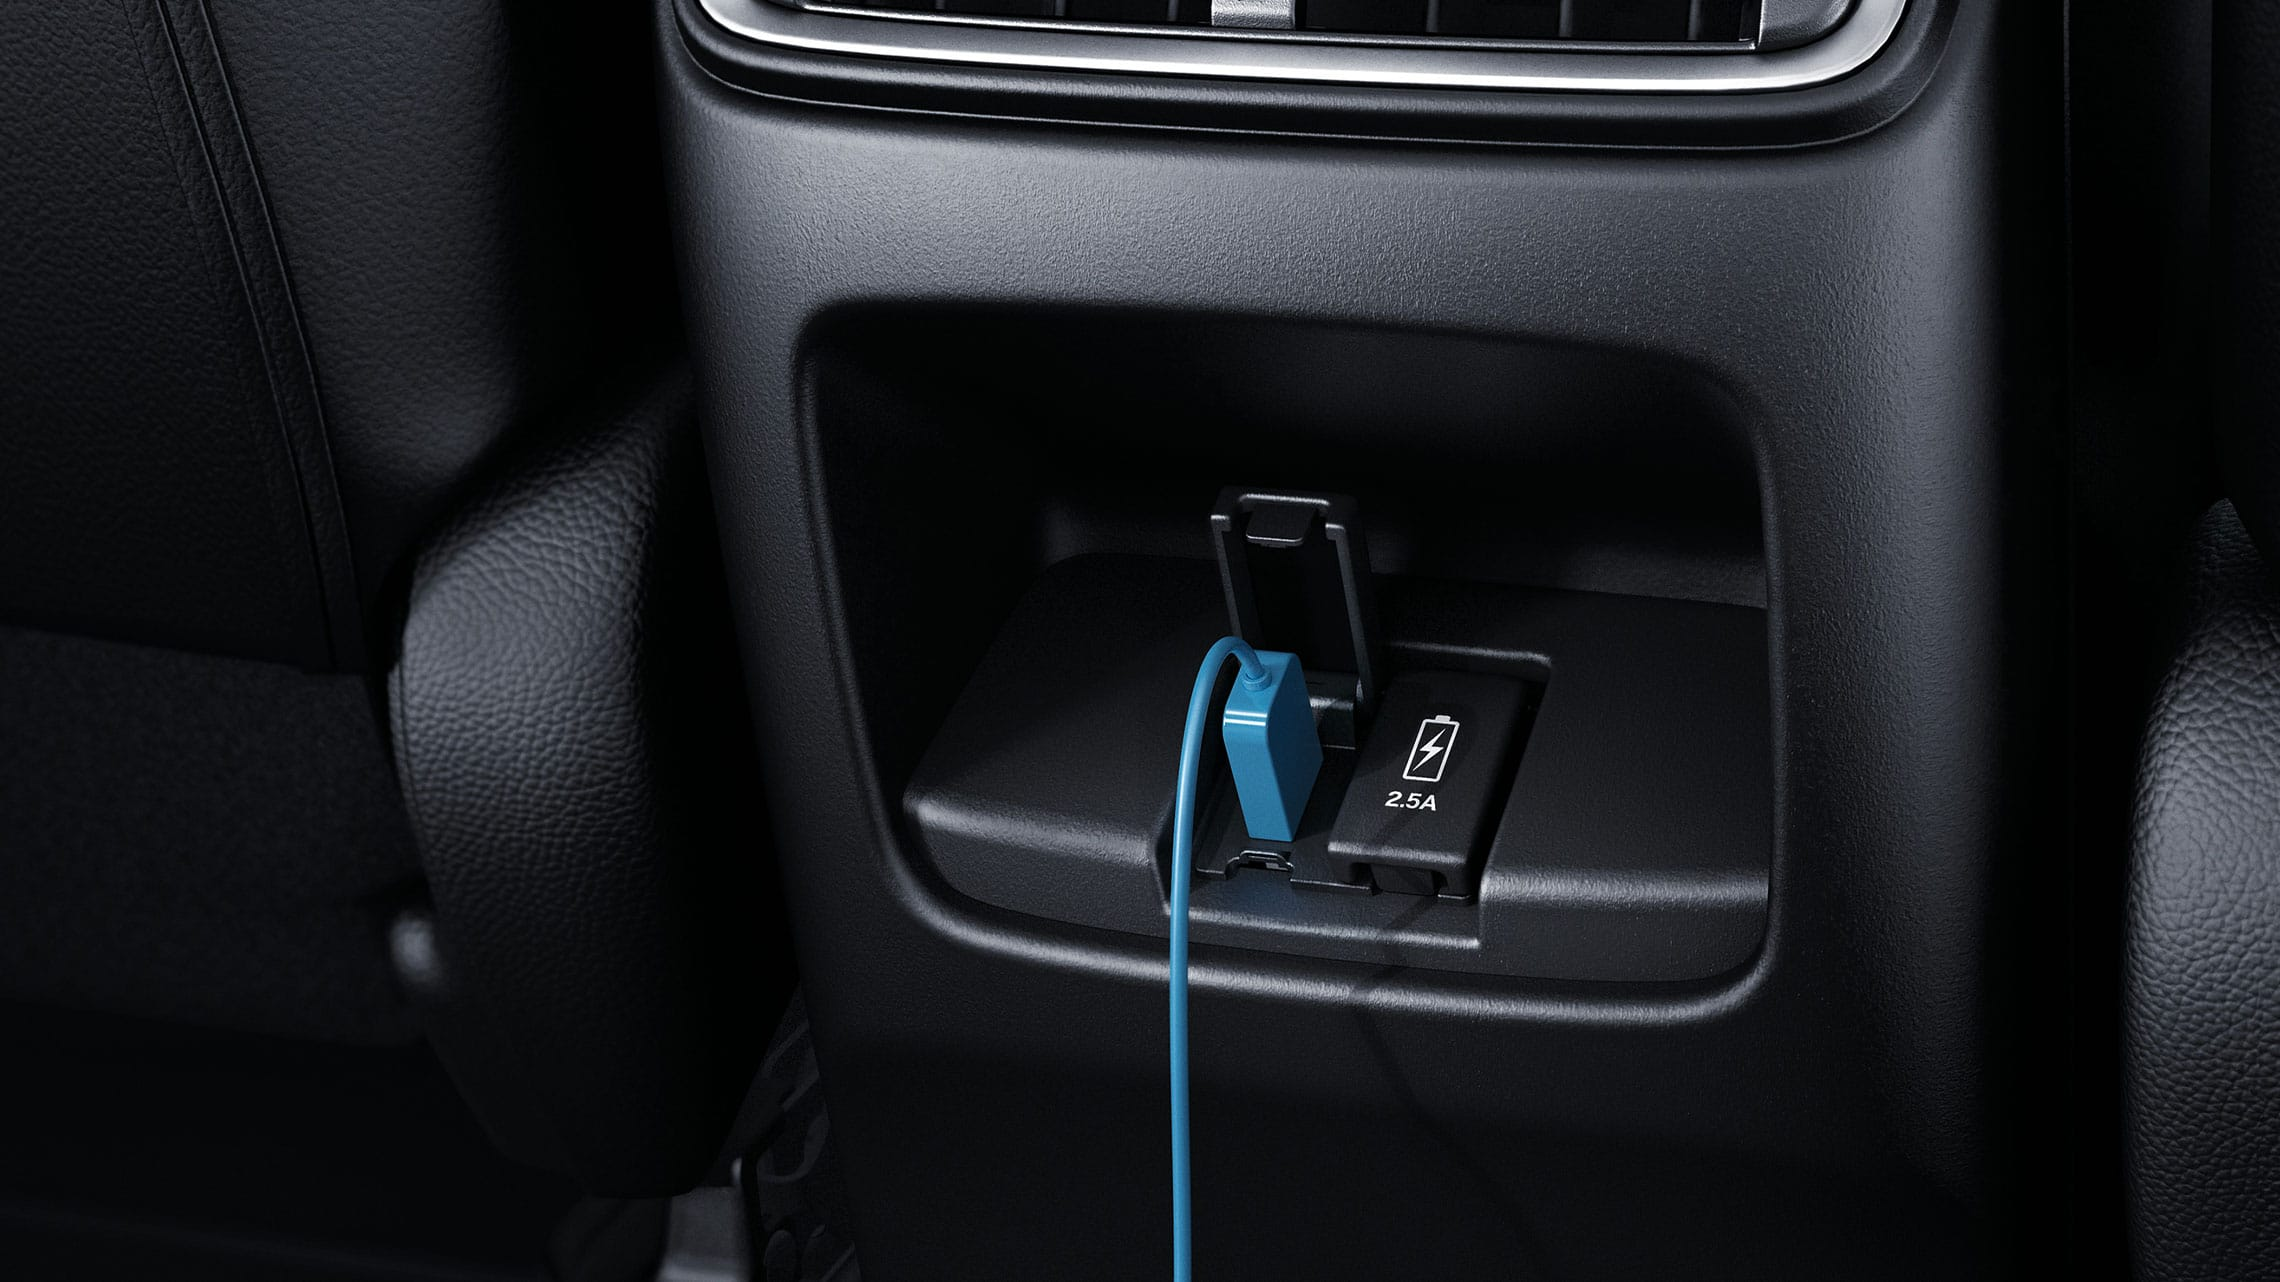 Interior view of rear USB ports in the 2020 Honda CR-V.